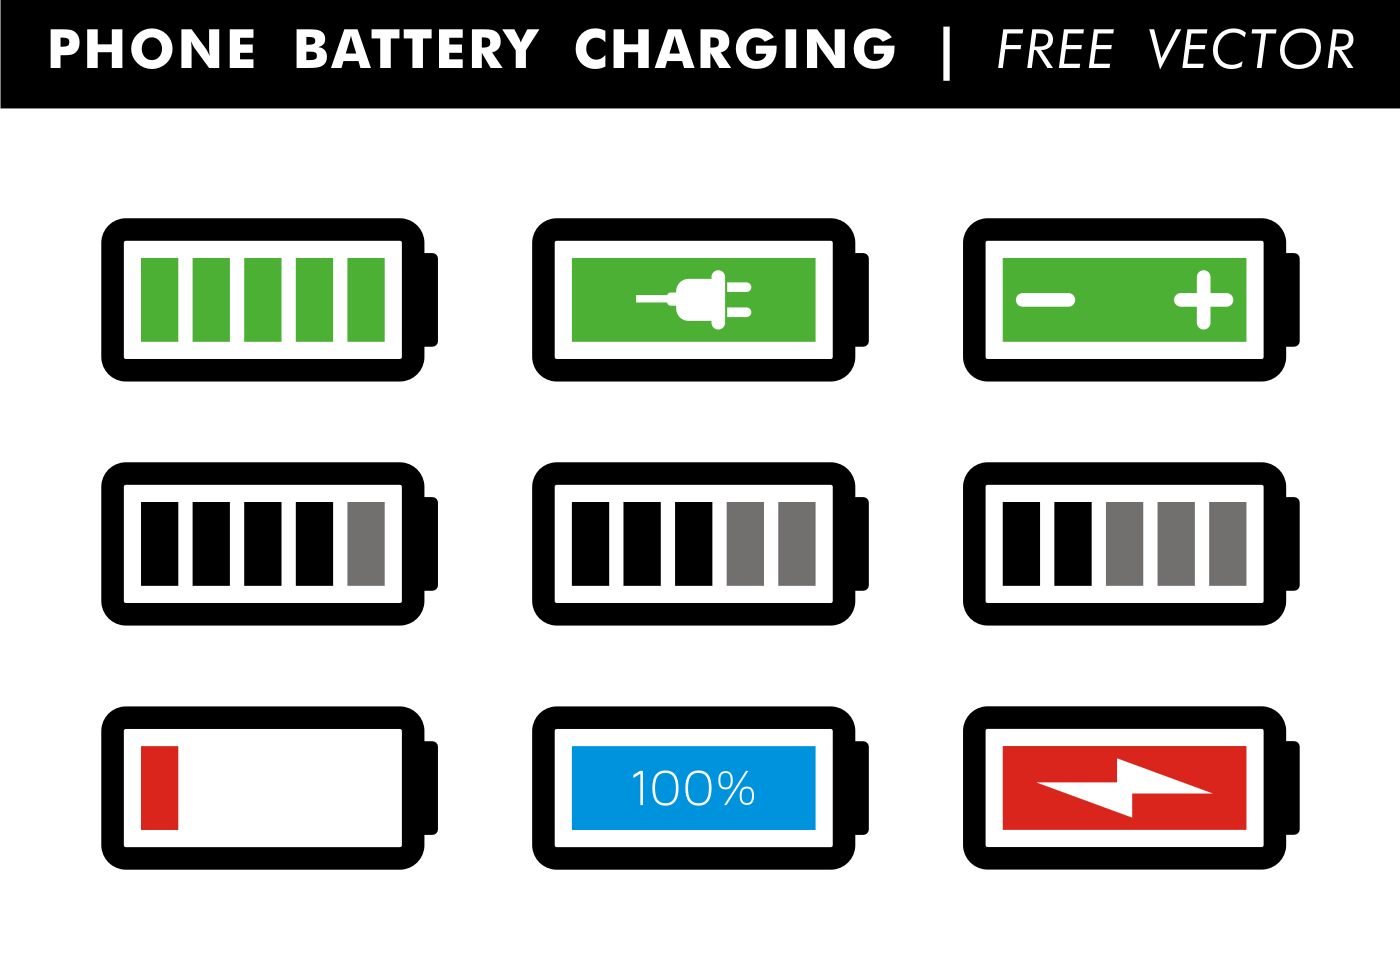 1400x980 Phone Battery Charging Free Vector